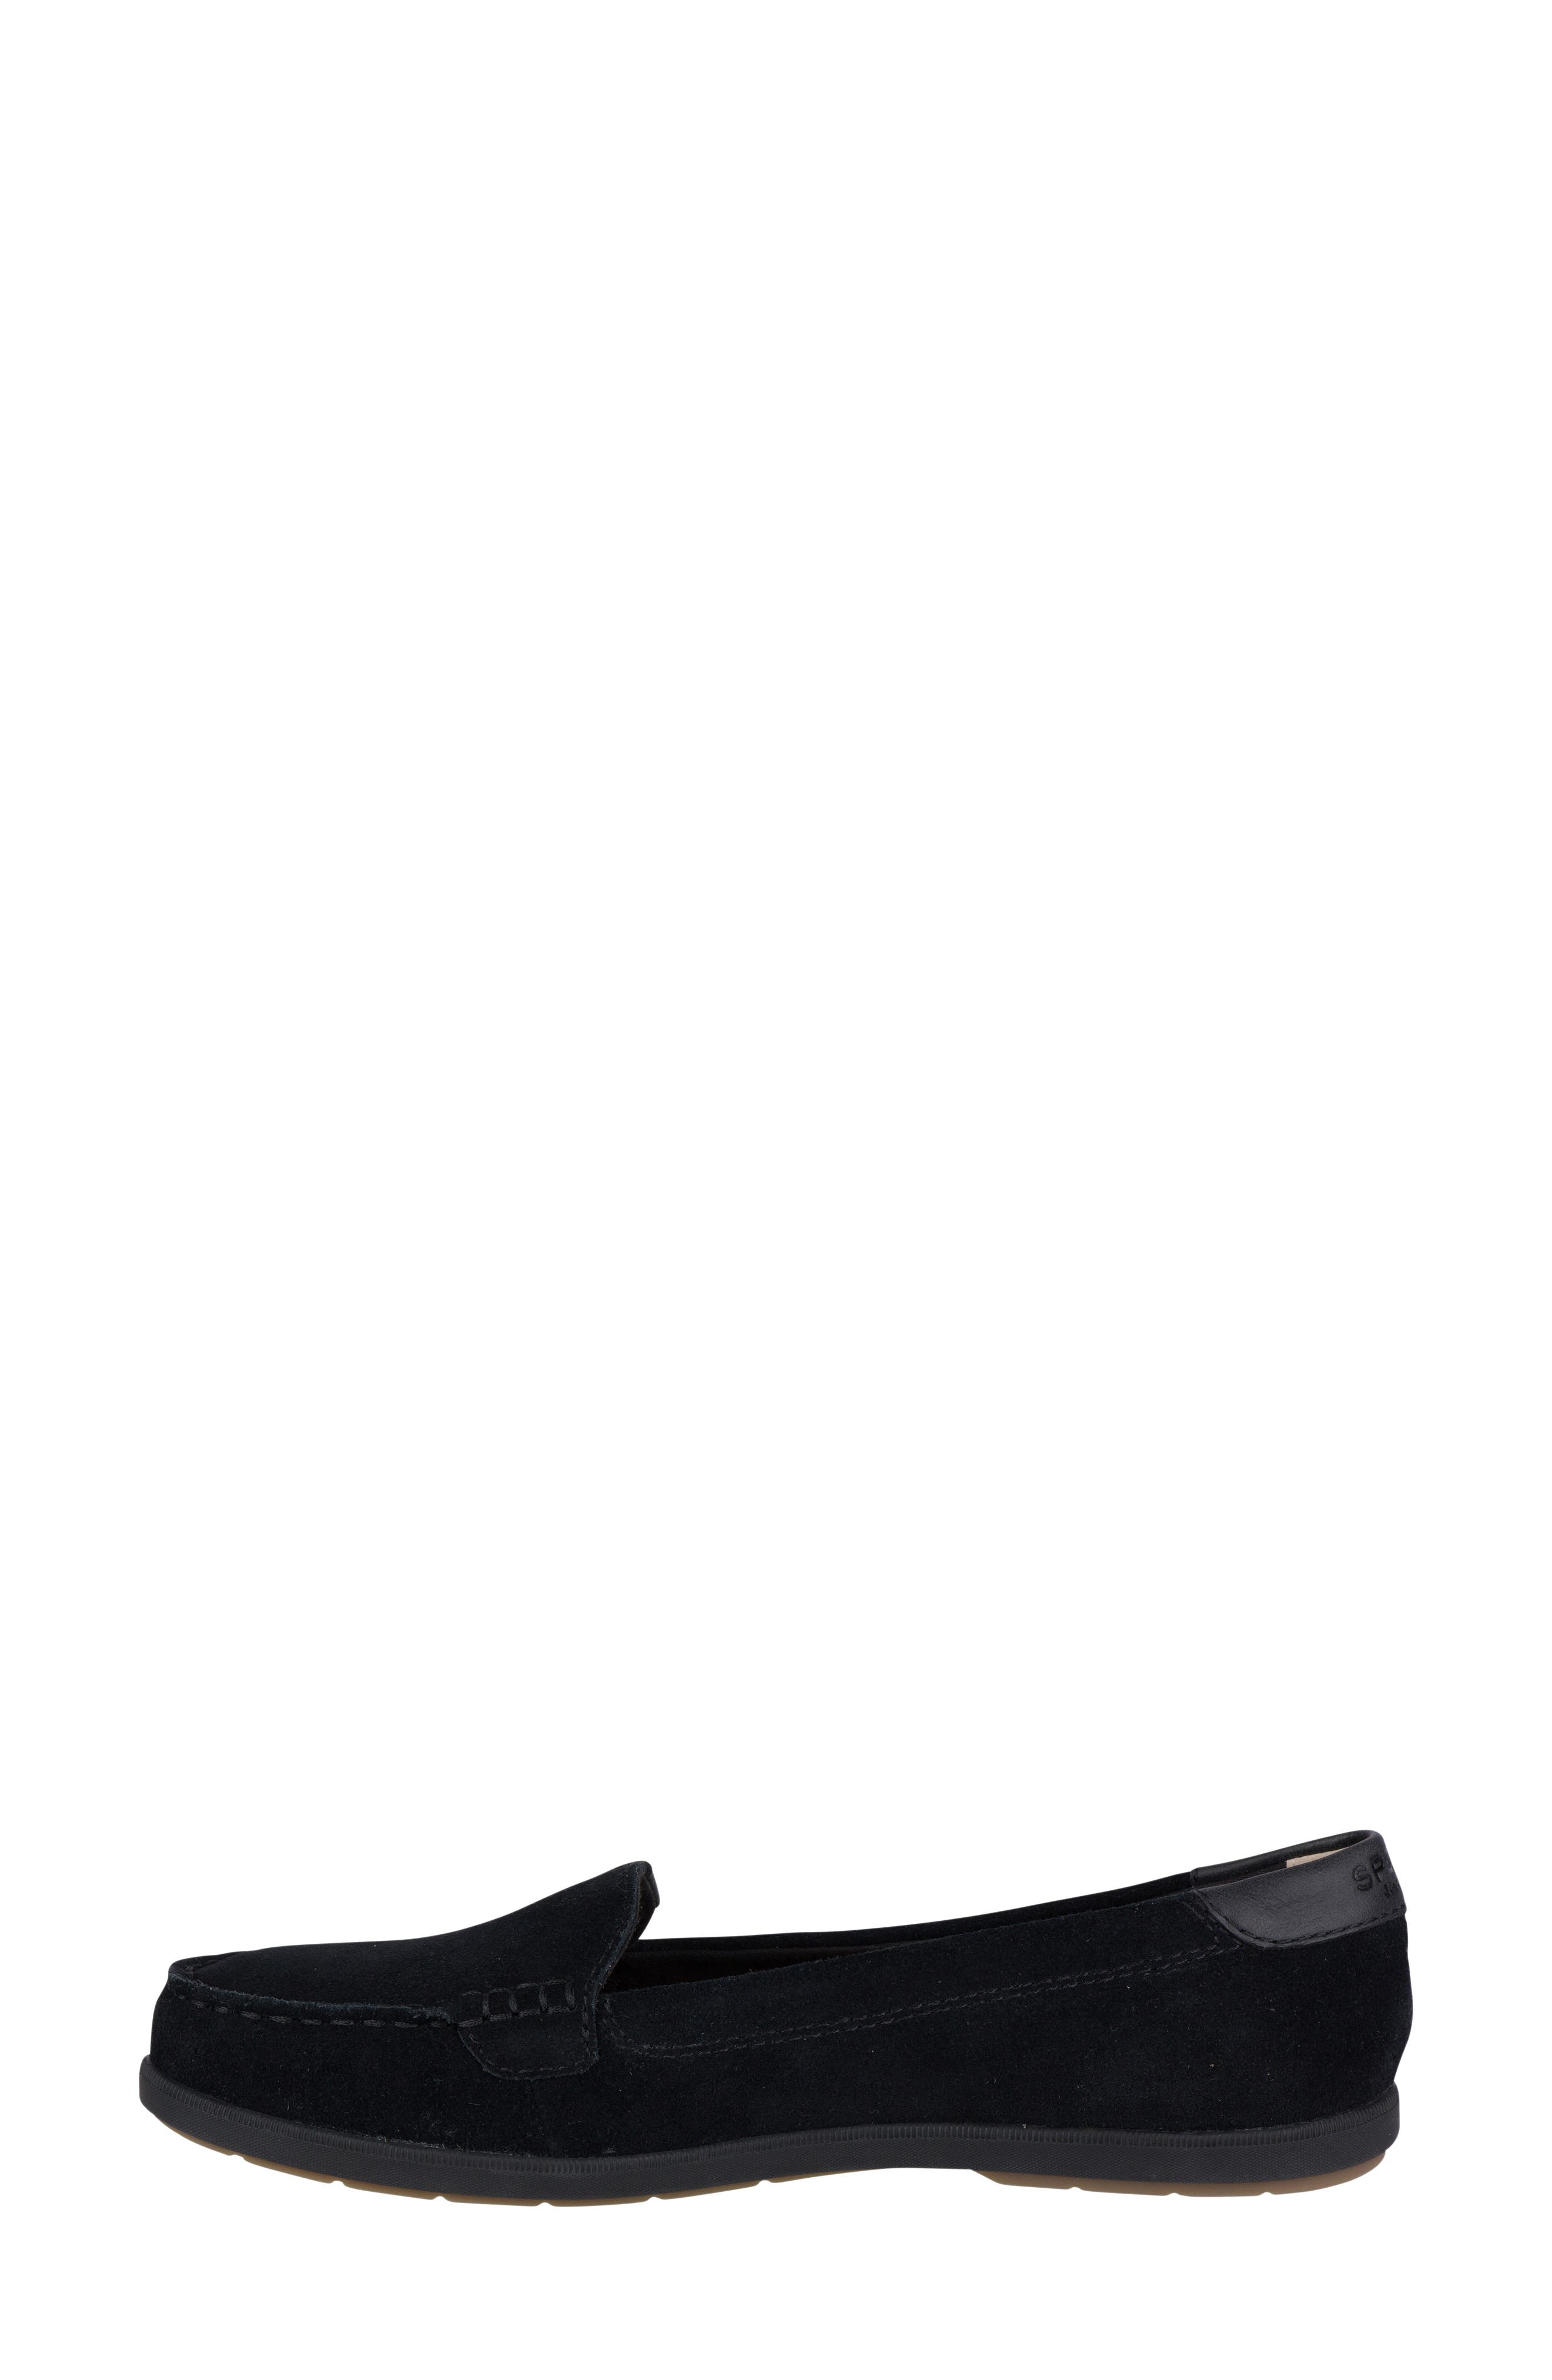 Coil Mia Loafer,                             Alternate thumbnail 10, color,